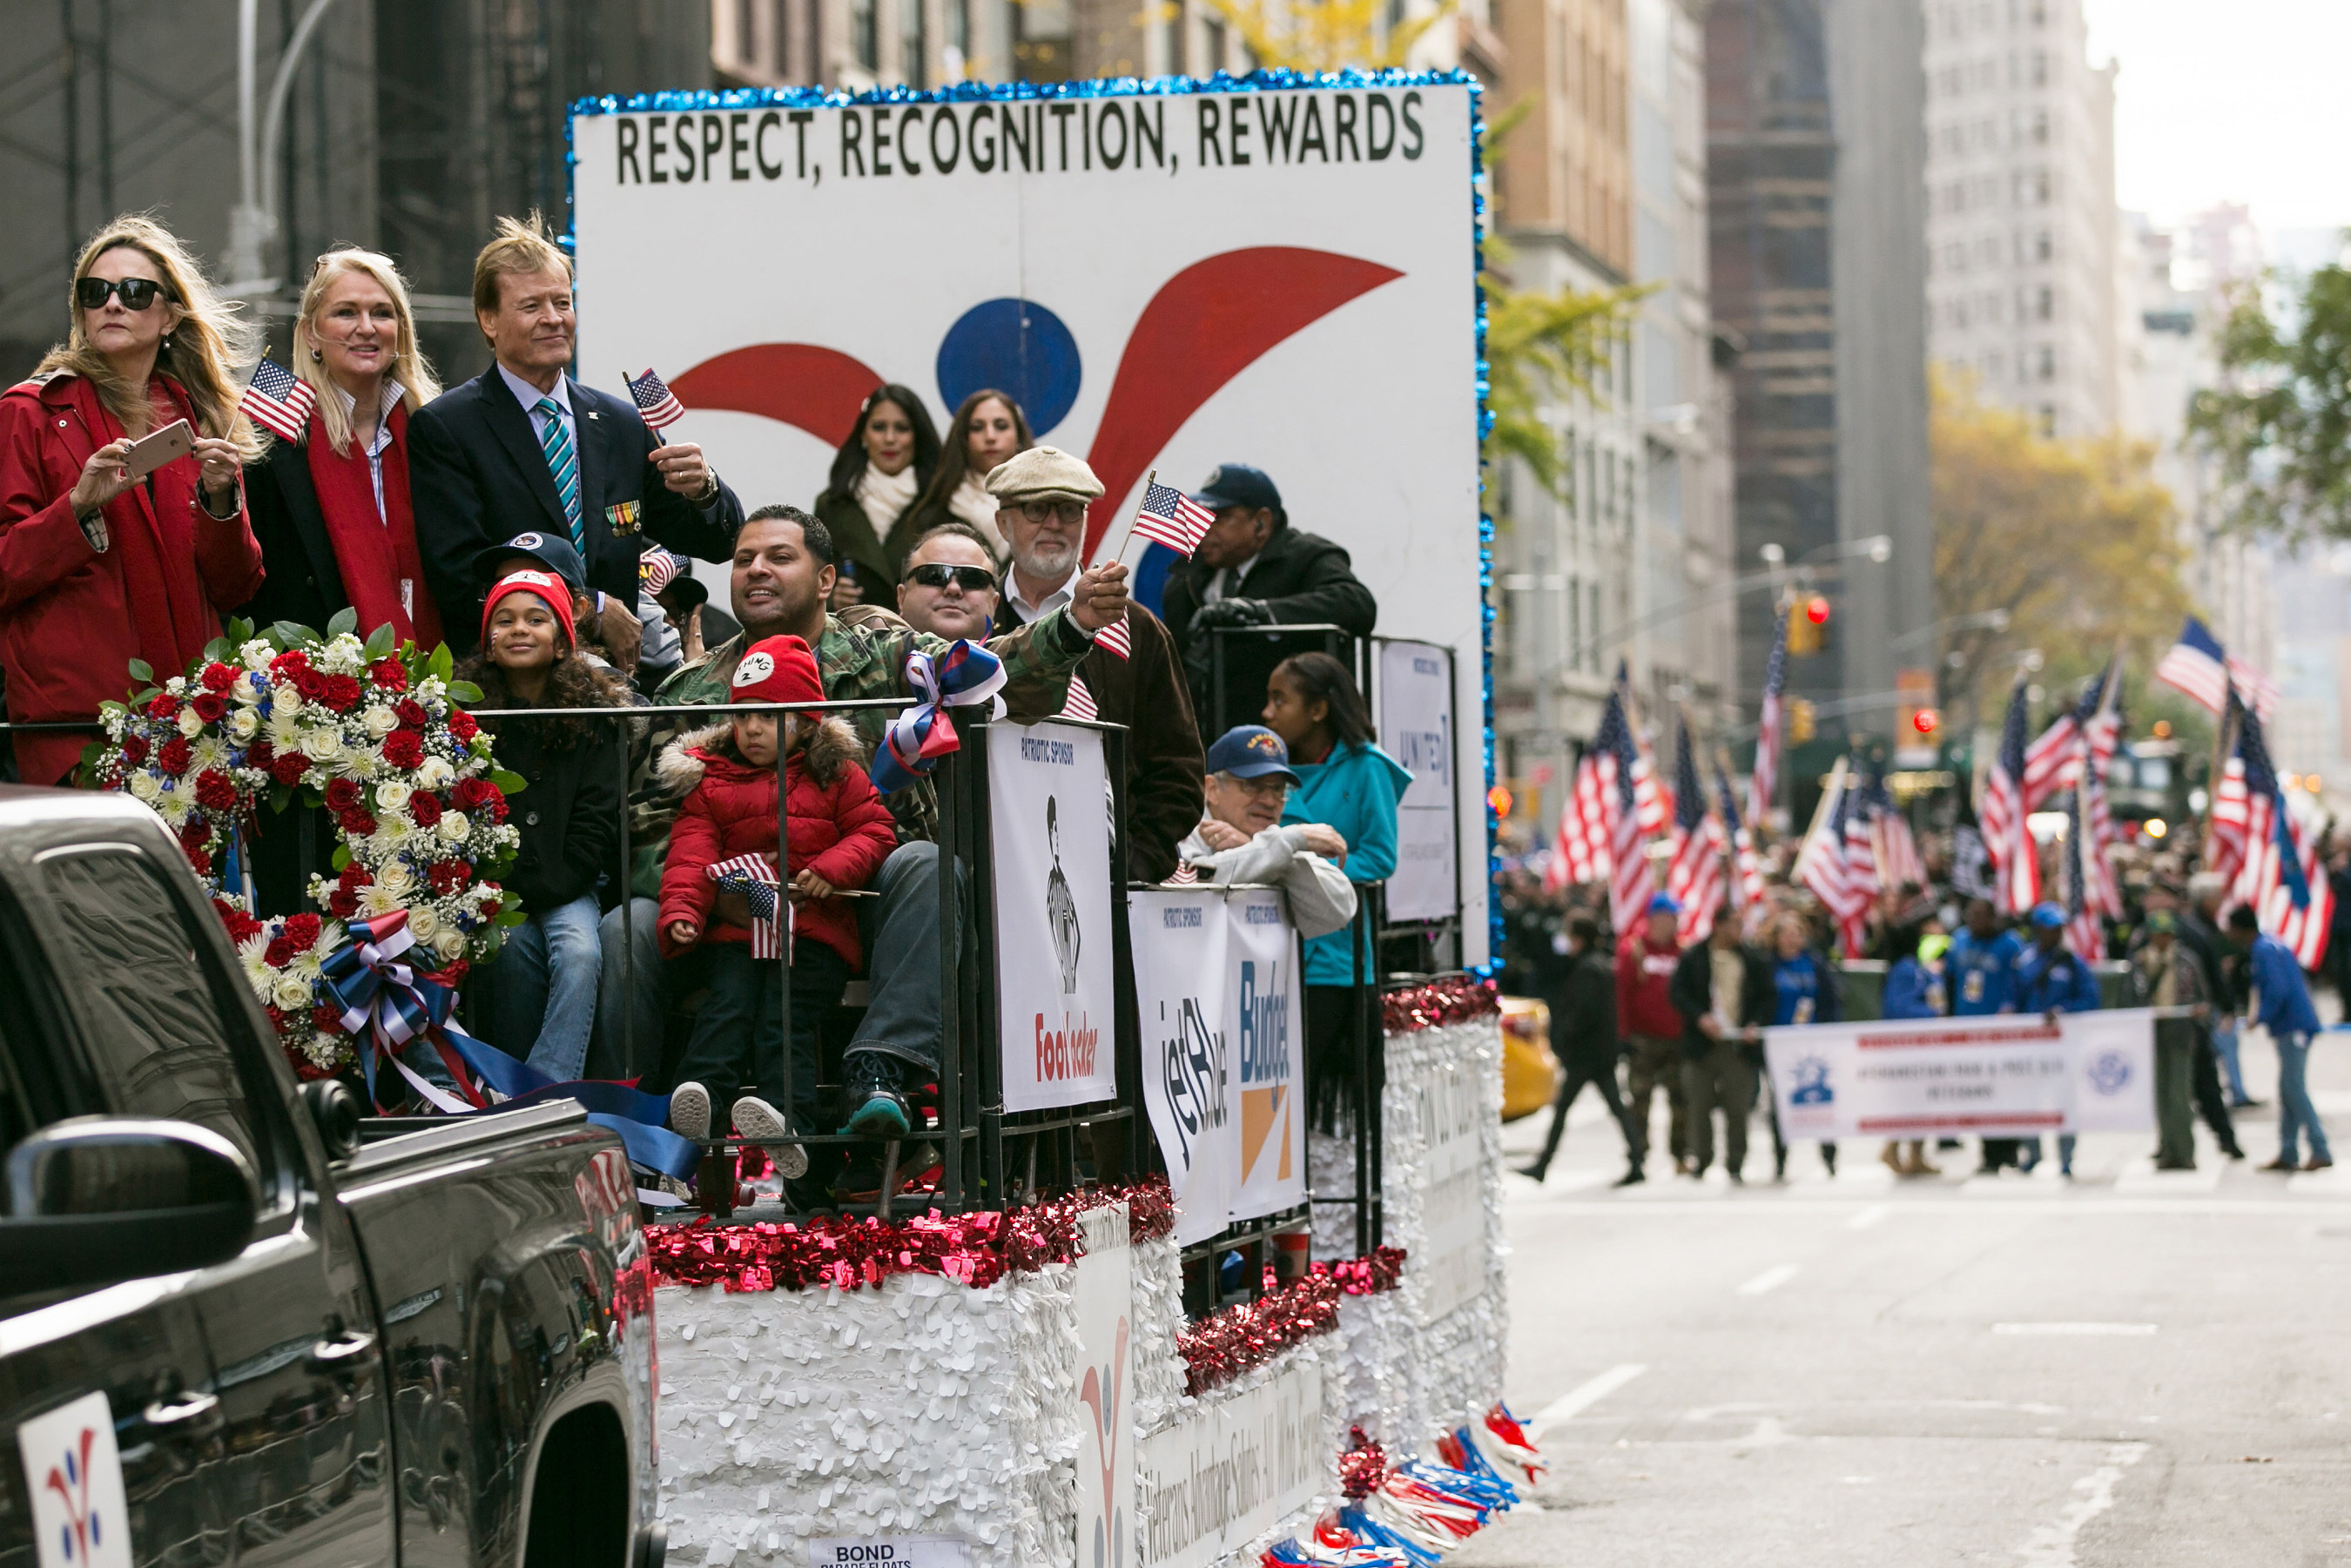 The Veterans Advantage float joins the Veterans Day Parade, also known as America's Parade, in New York City on Veterans Day, Wednesday, Nov. 11, 2015. PHOTO BY MARK JOHNSTON/Veterans Advantage